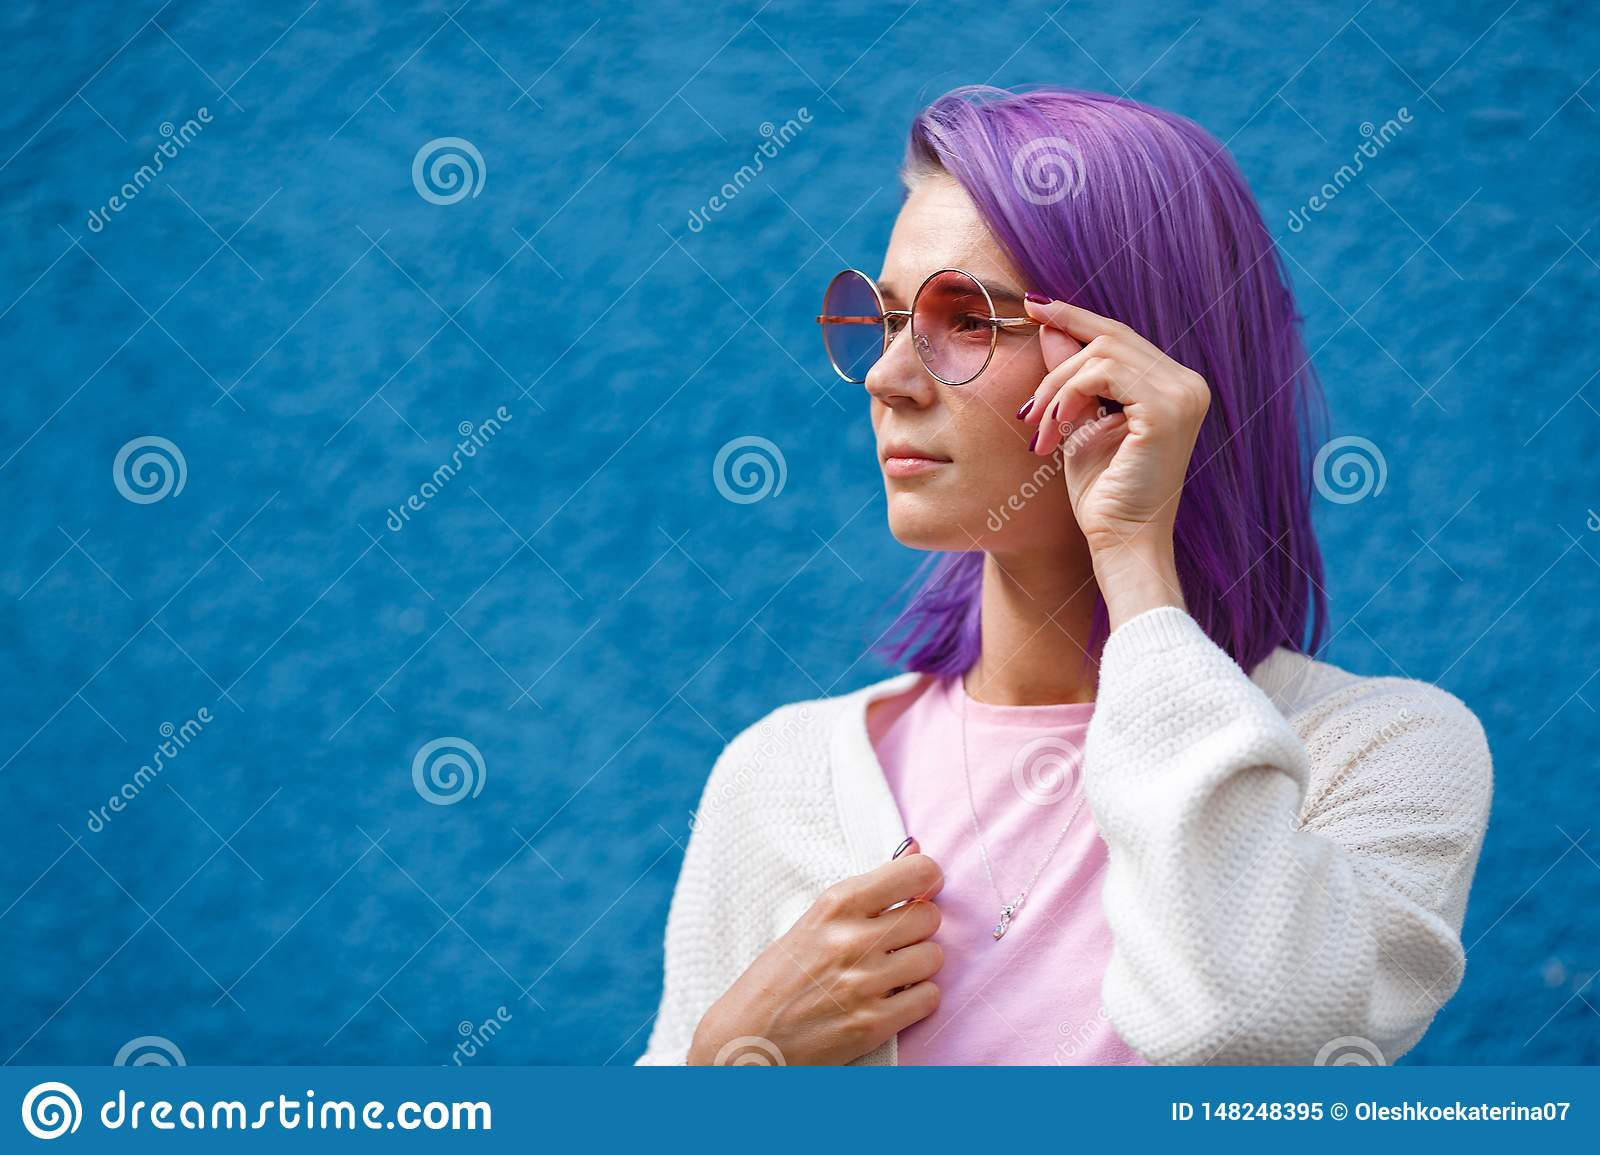 A girl with purple hair in pink glasses